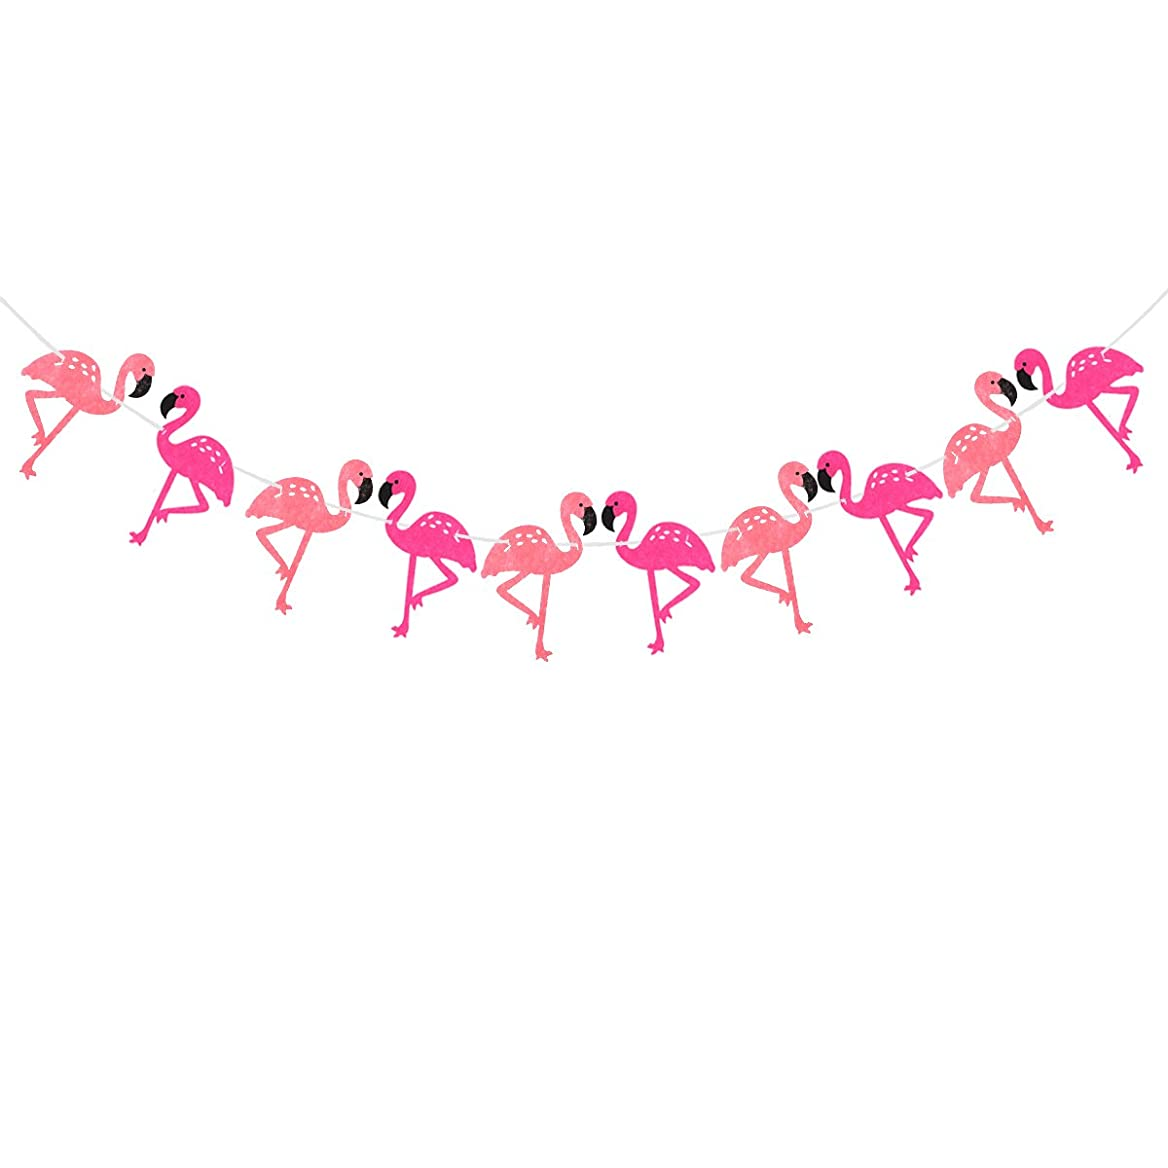 LUOEM Pink Flamingo Banner Hawaiian Tropical Party Garland Party Decoration Flamingo Party Supplies for Beach Summer Tropical Party Theme Decor 3M zlugsazoii68